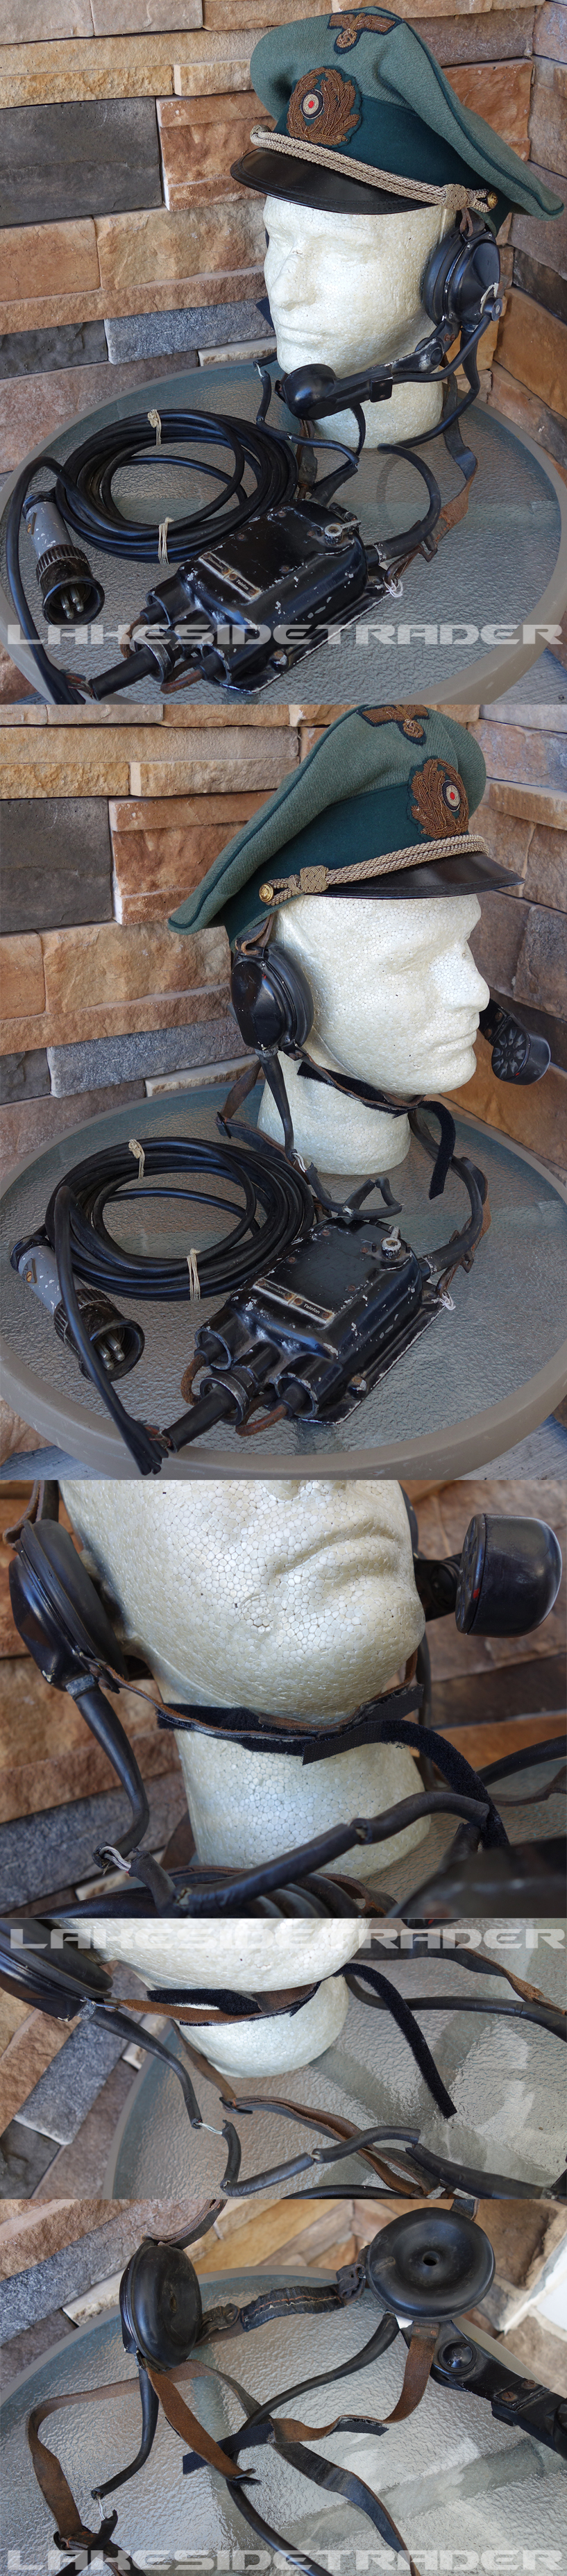 Küstenartillerie Headset